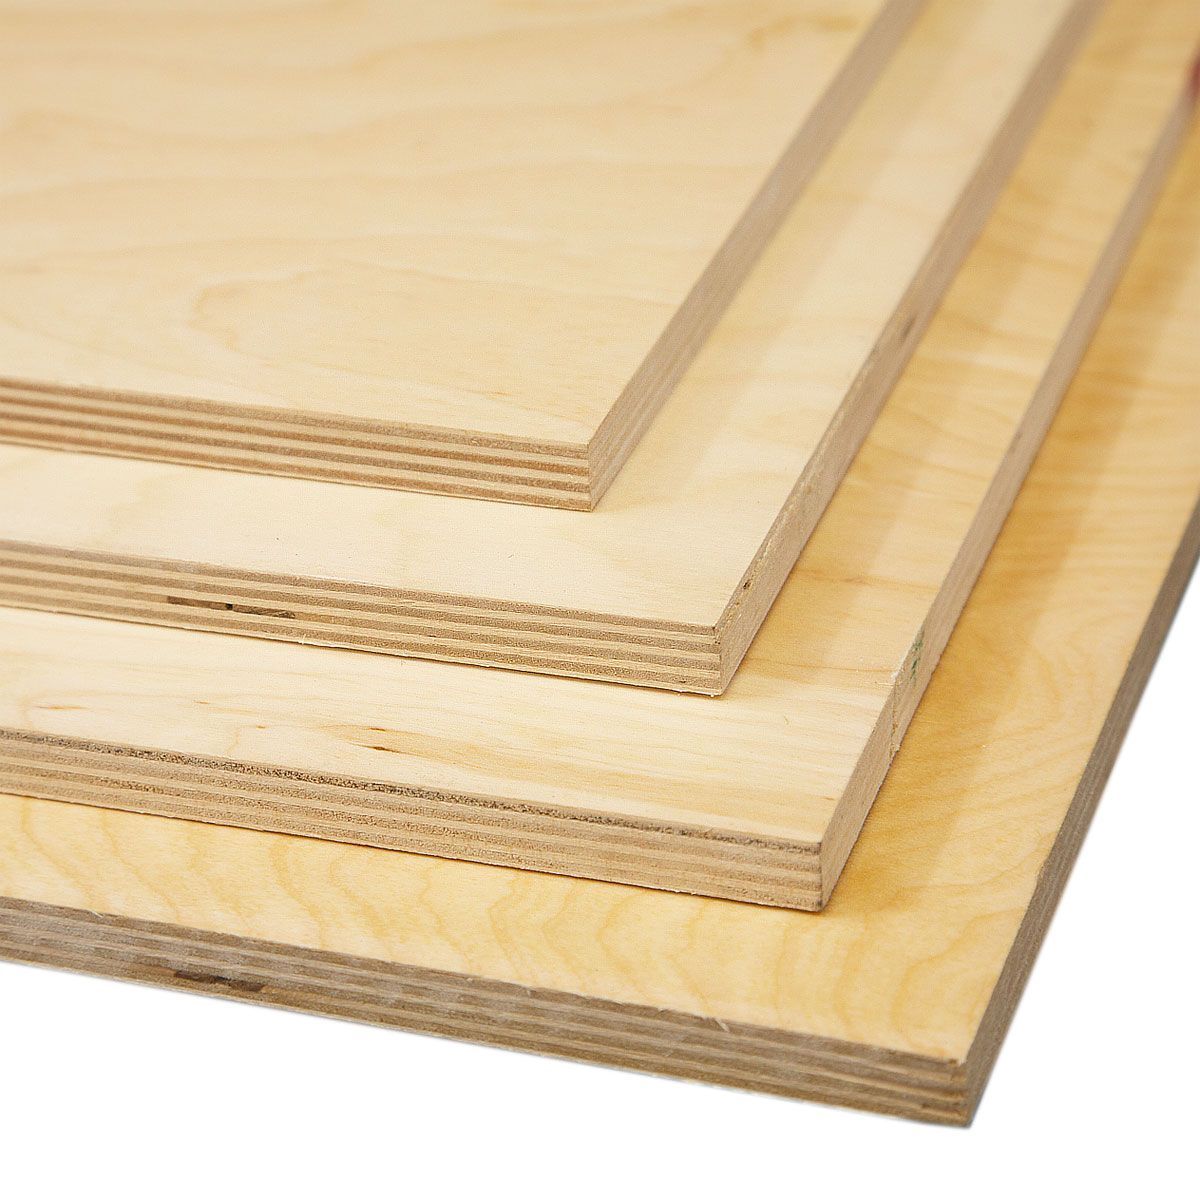 1 2 Pre Finished Baltic Birch Plywood Pack Choose Your Size Birch Plywood Baltic Birch Plywood Plywood